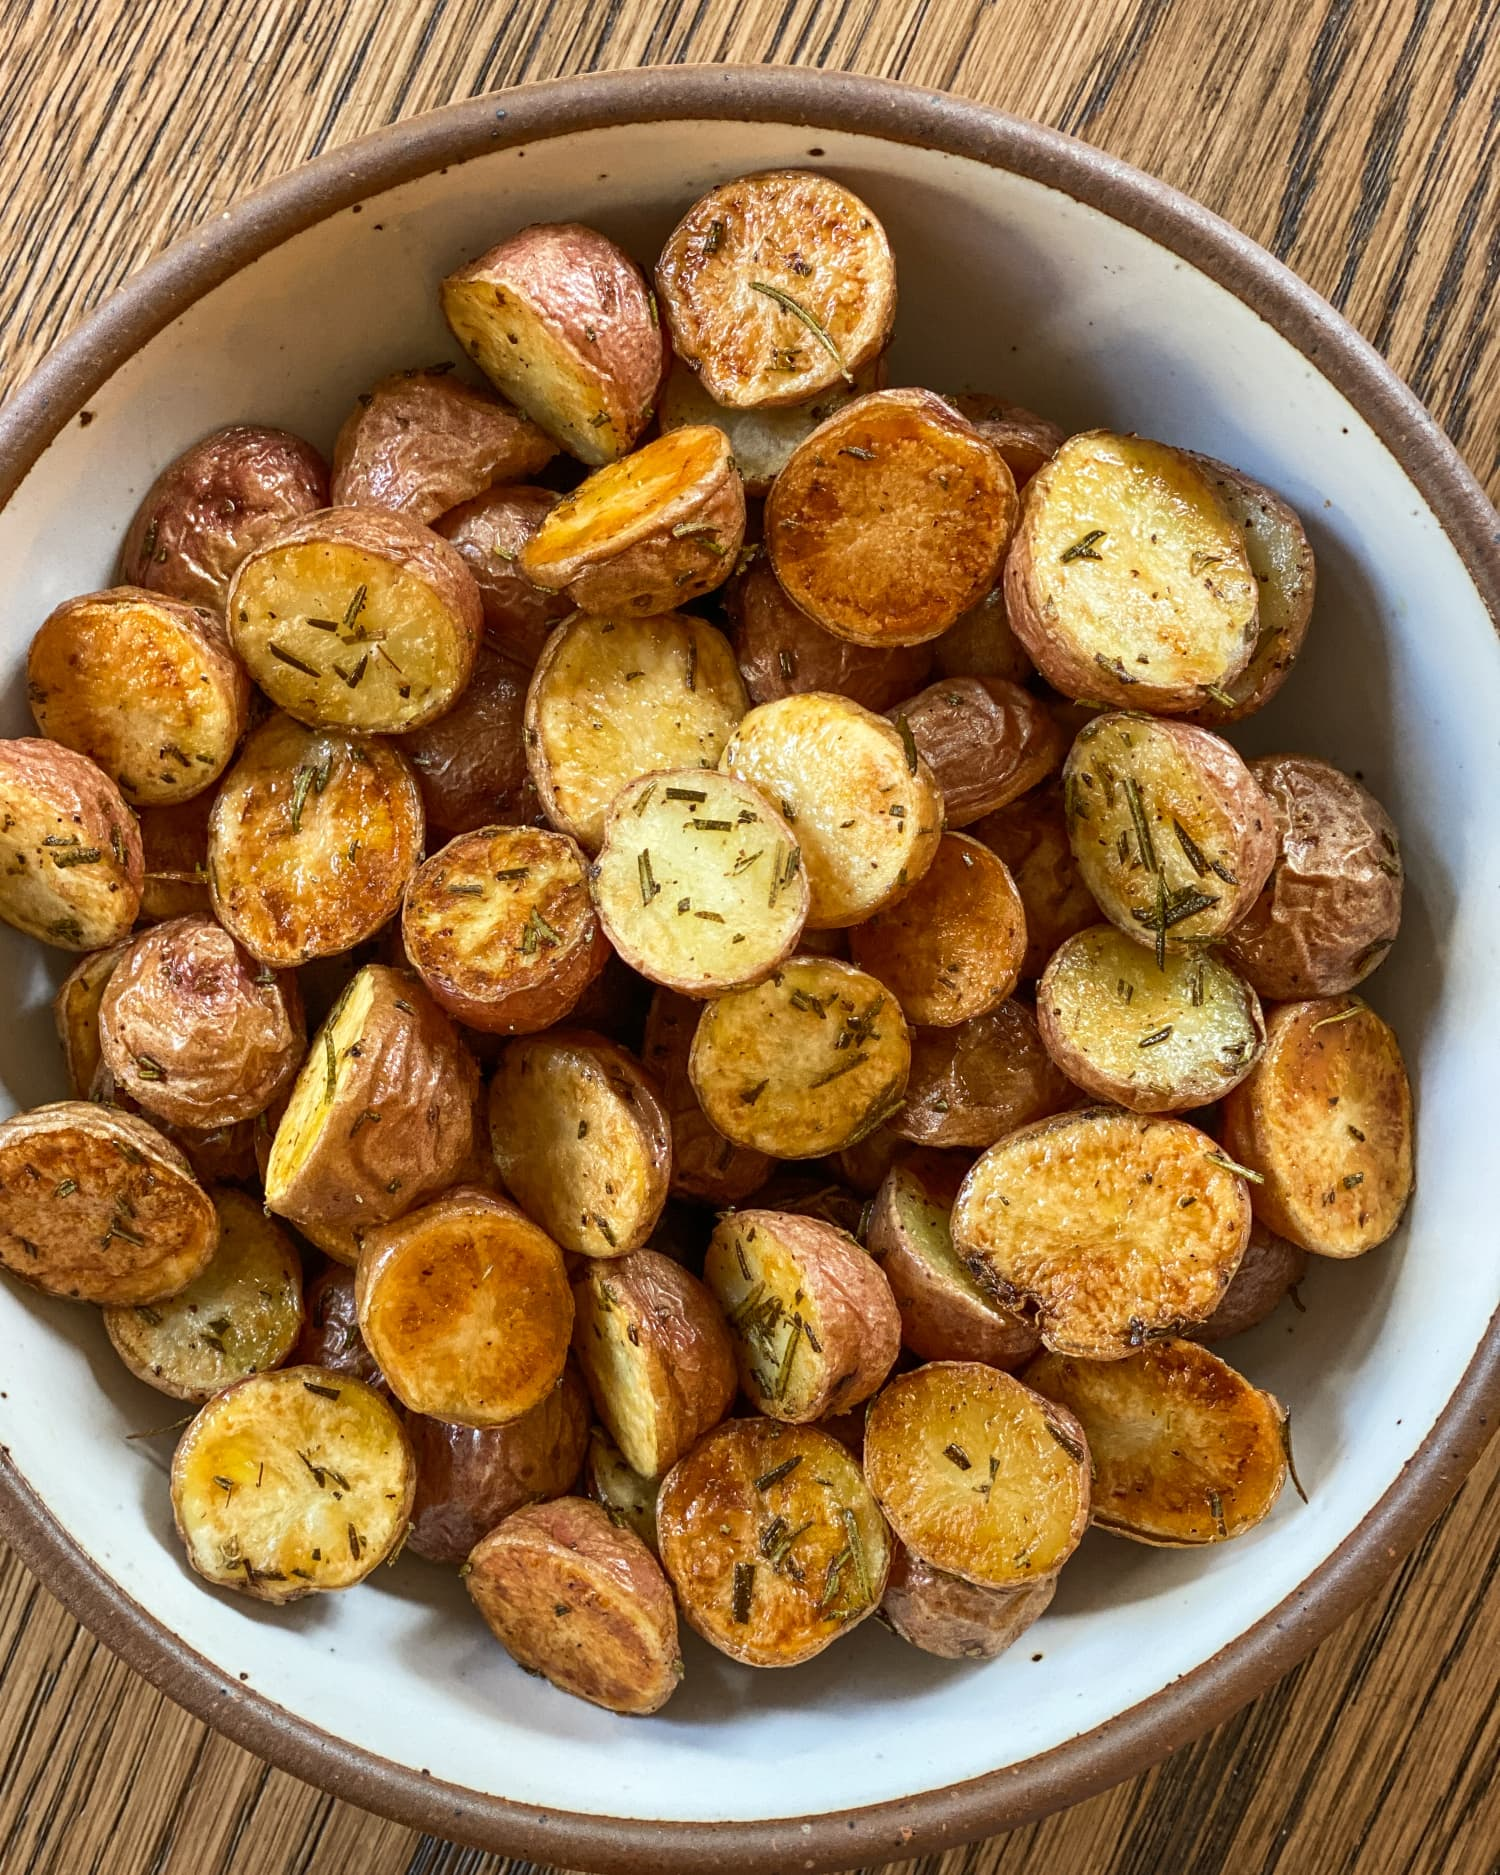 Crispy Baby Potatoes Are the Perfect Go-to Side Dish